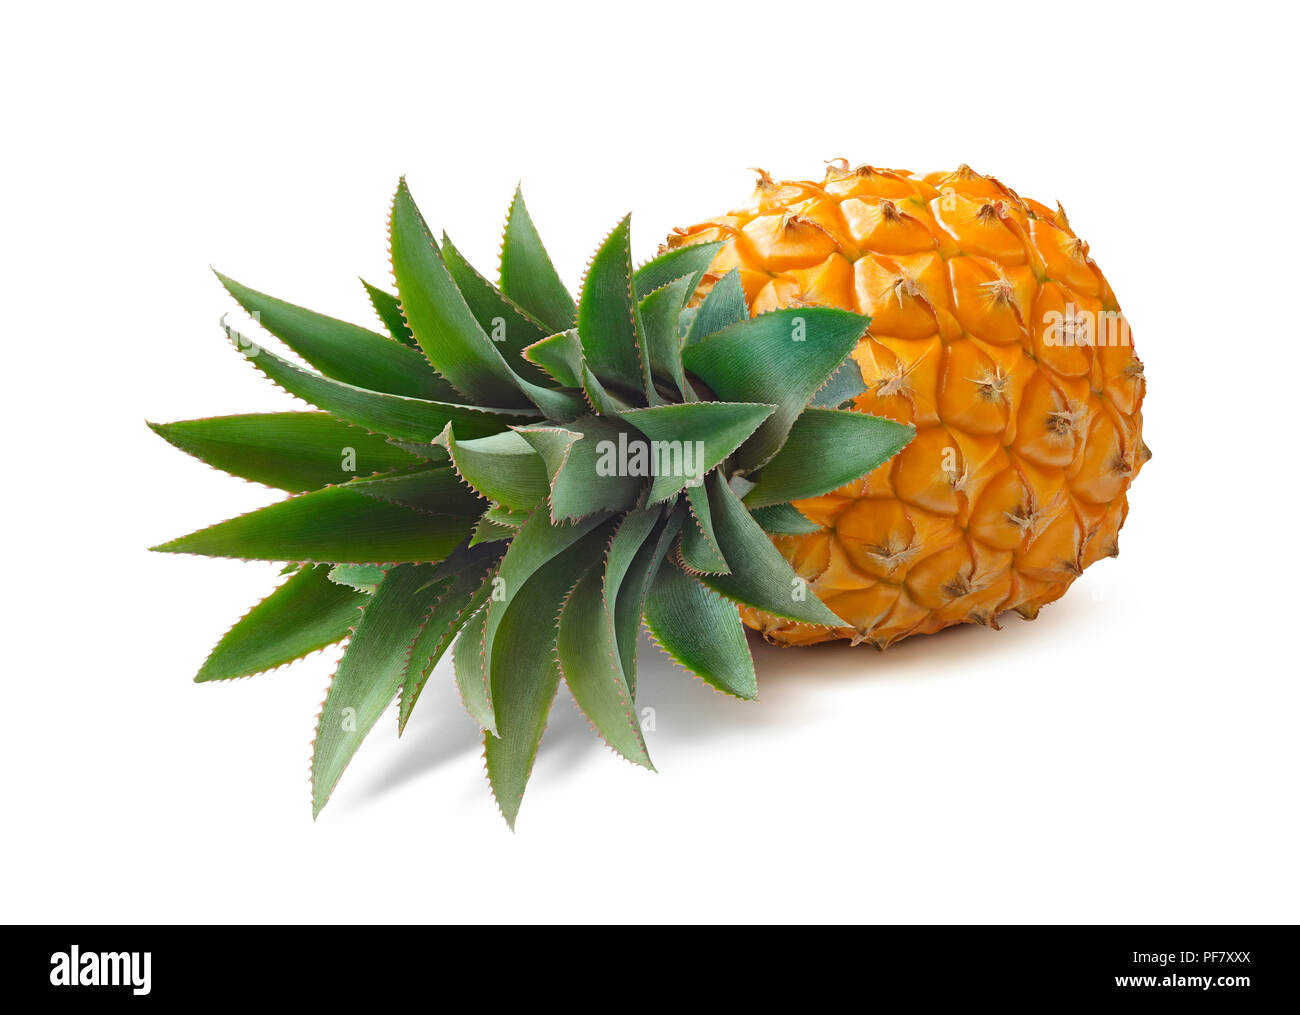 Lying pineapple isolated on white background as package design element - Stock Image